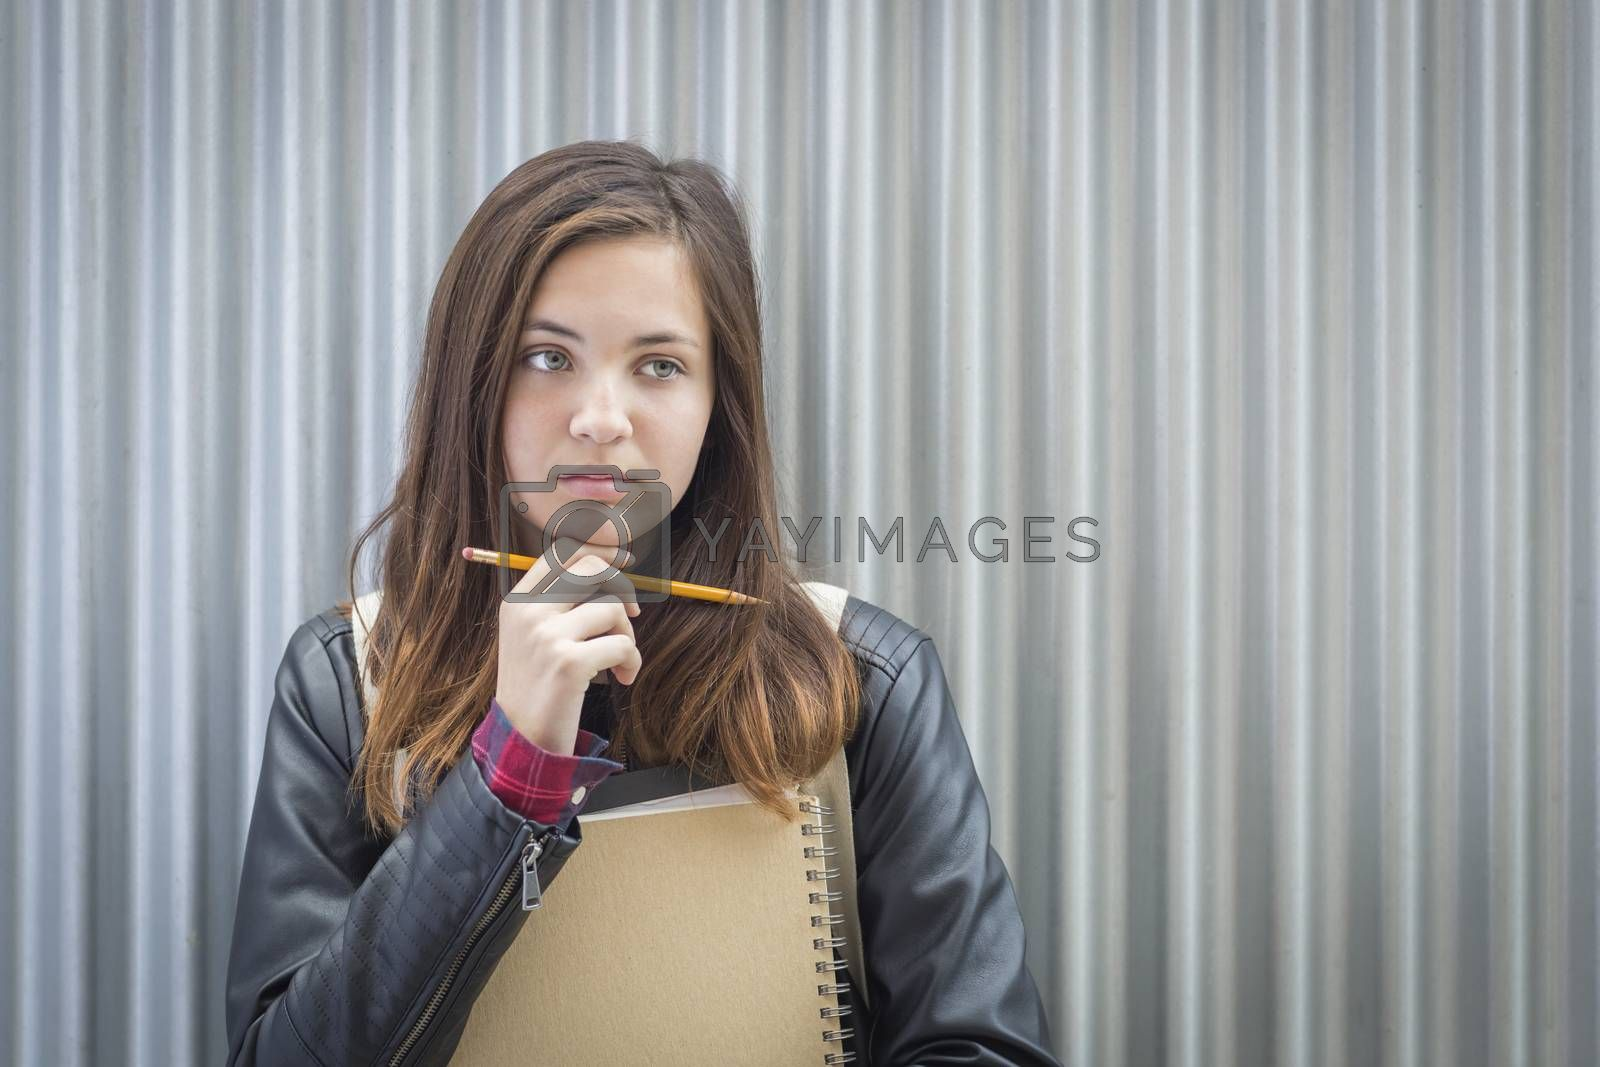 Royalty free image of Young Melancholy Female Student With Books Looking to the Side by Feverpitched